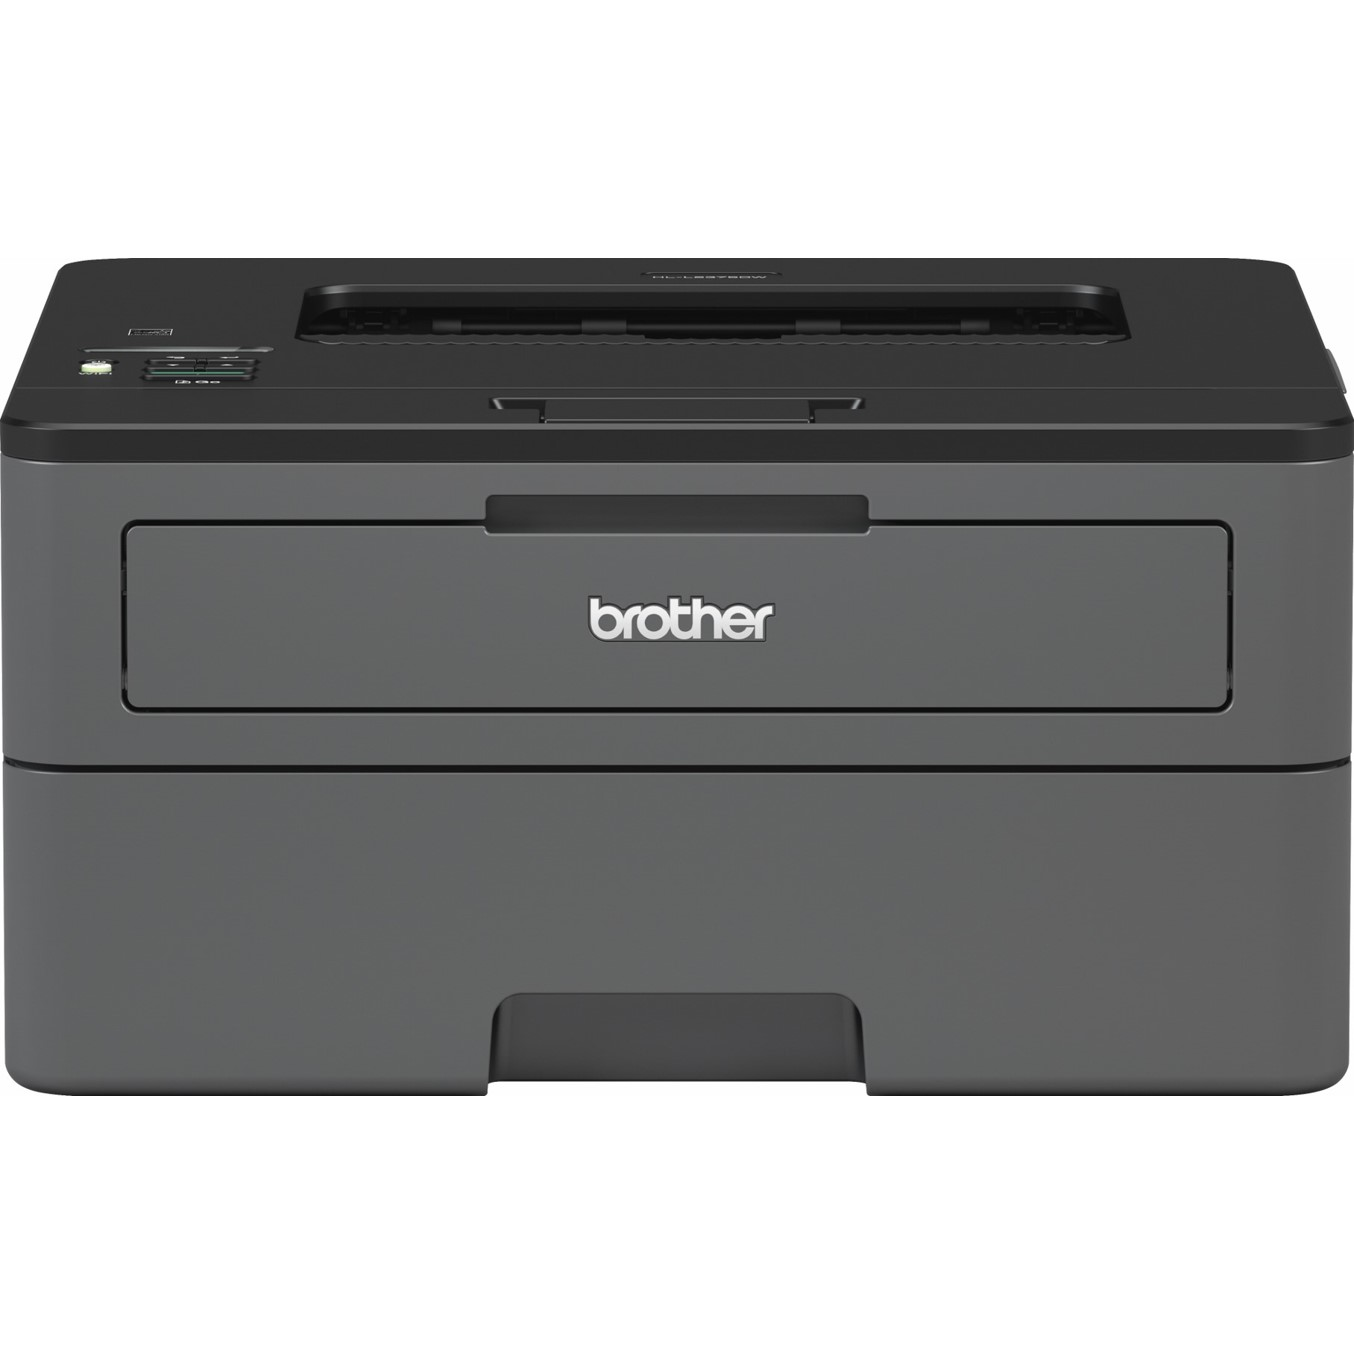 IMPRESORA BROTHER LASER MONOCROMO HLL2375DW A4- 34PPM- 64MB- USB 2 0- RED- WIFI- WIFI DIRECT- BANDEJA 250 HOJAS- DUPLEX IMPRESION